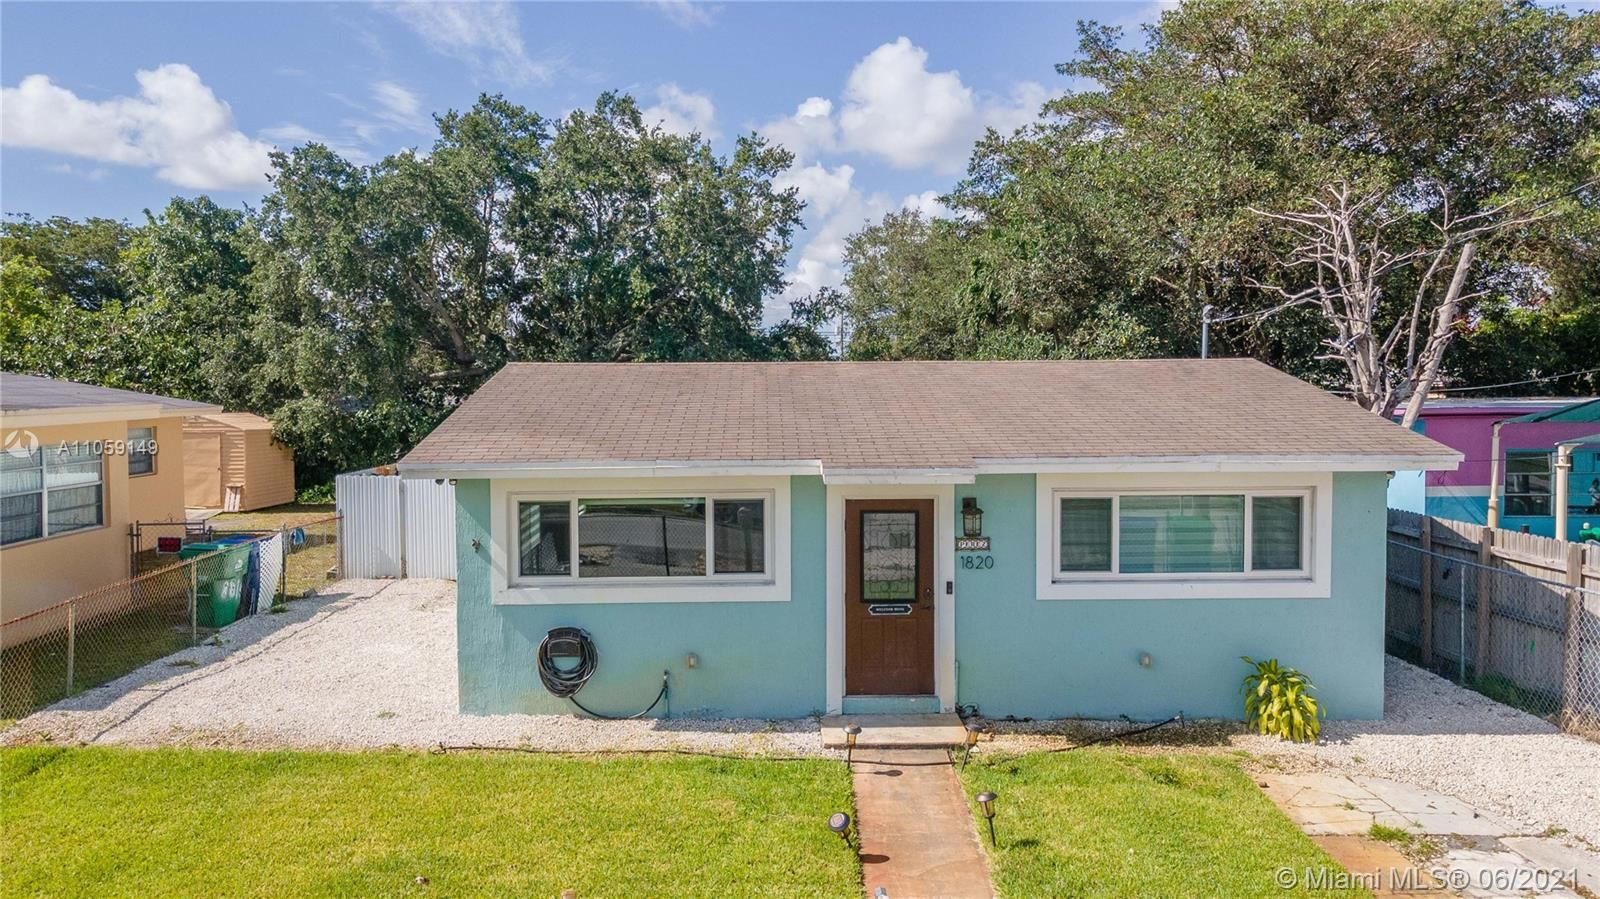 1820 NW 152nd Ter, Miami Gardens, FL 33054 - #: A11059149